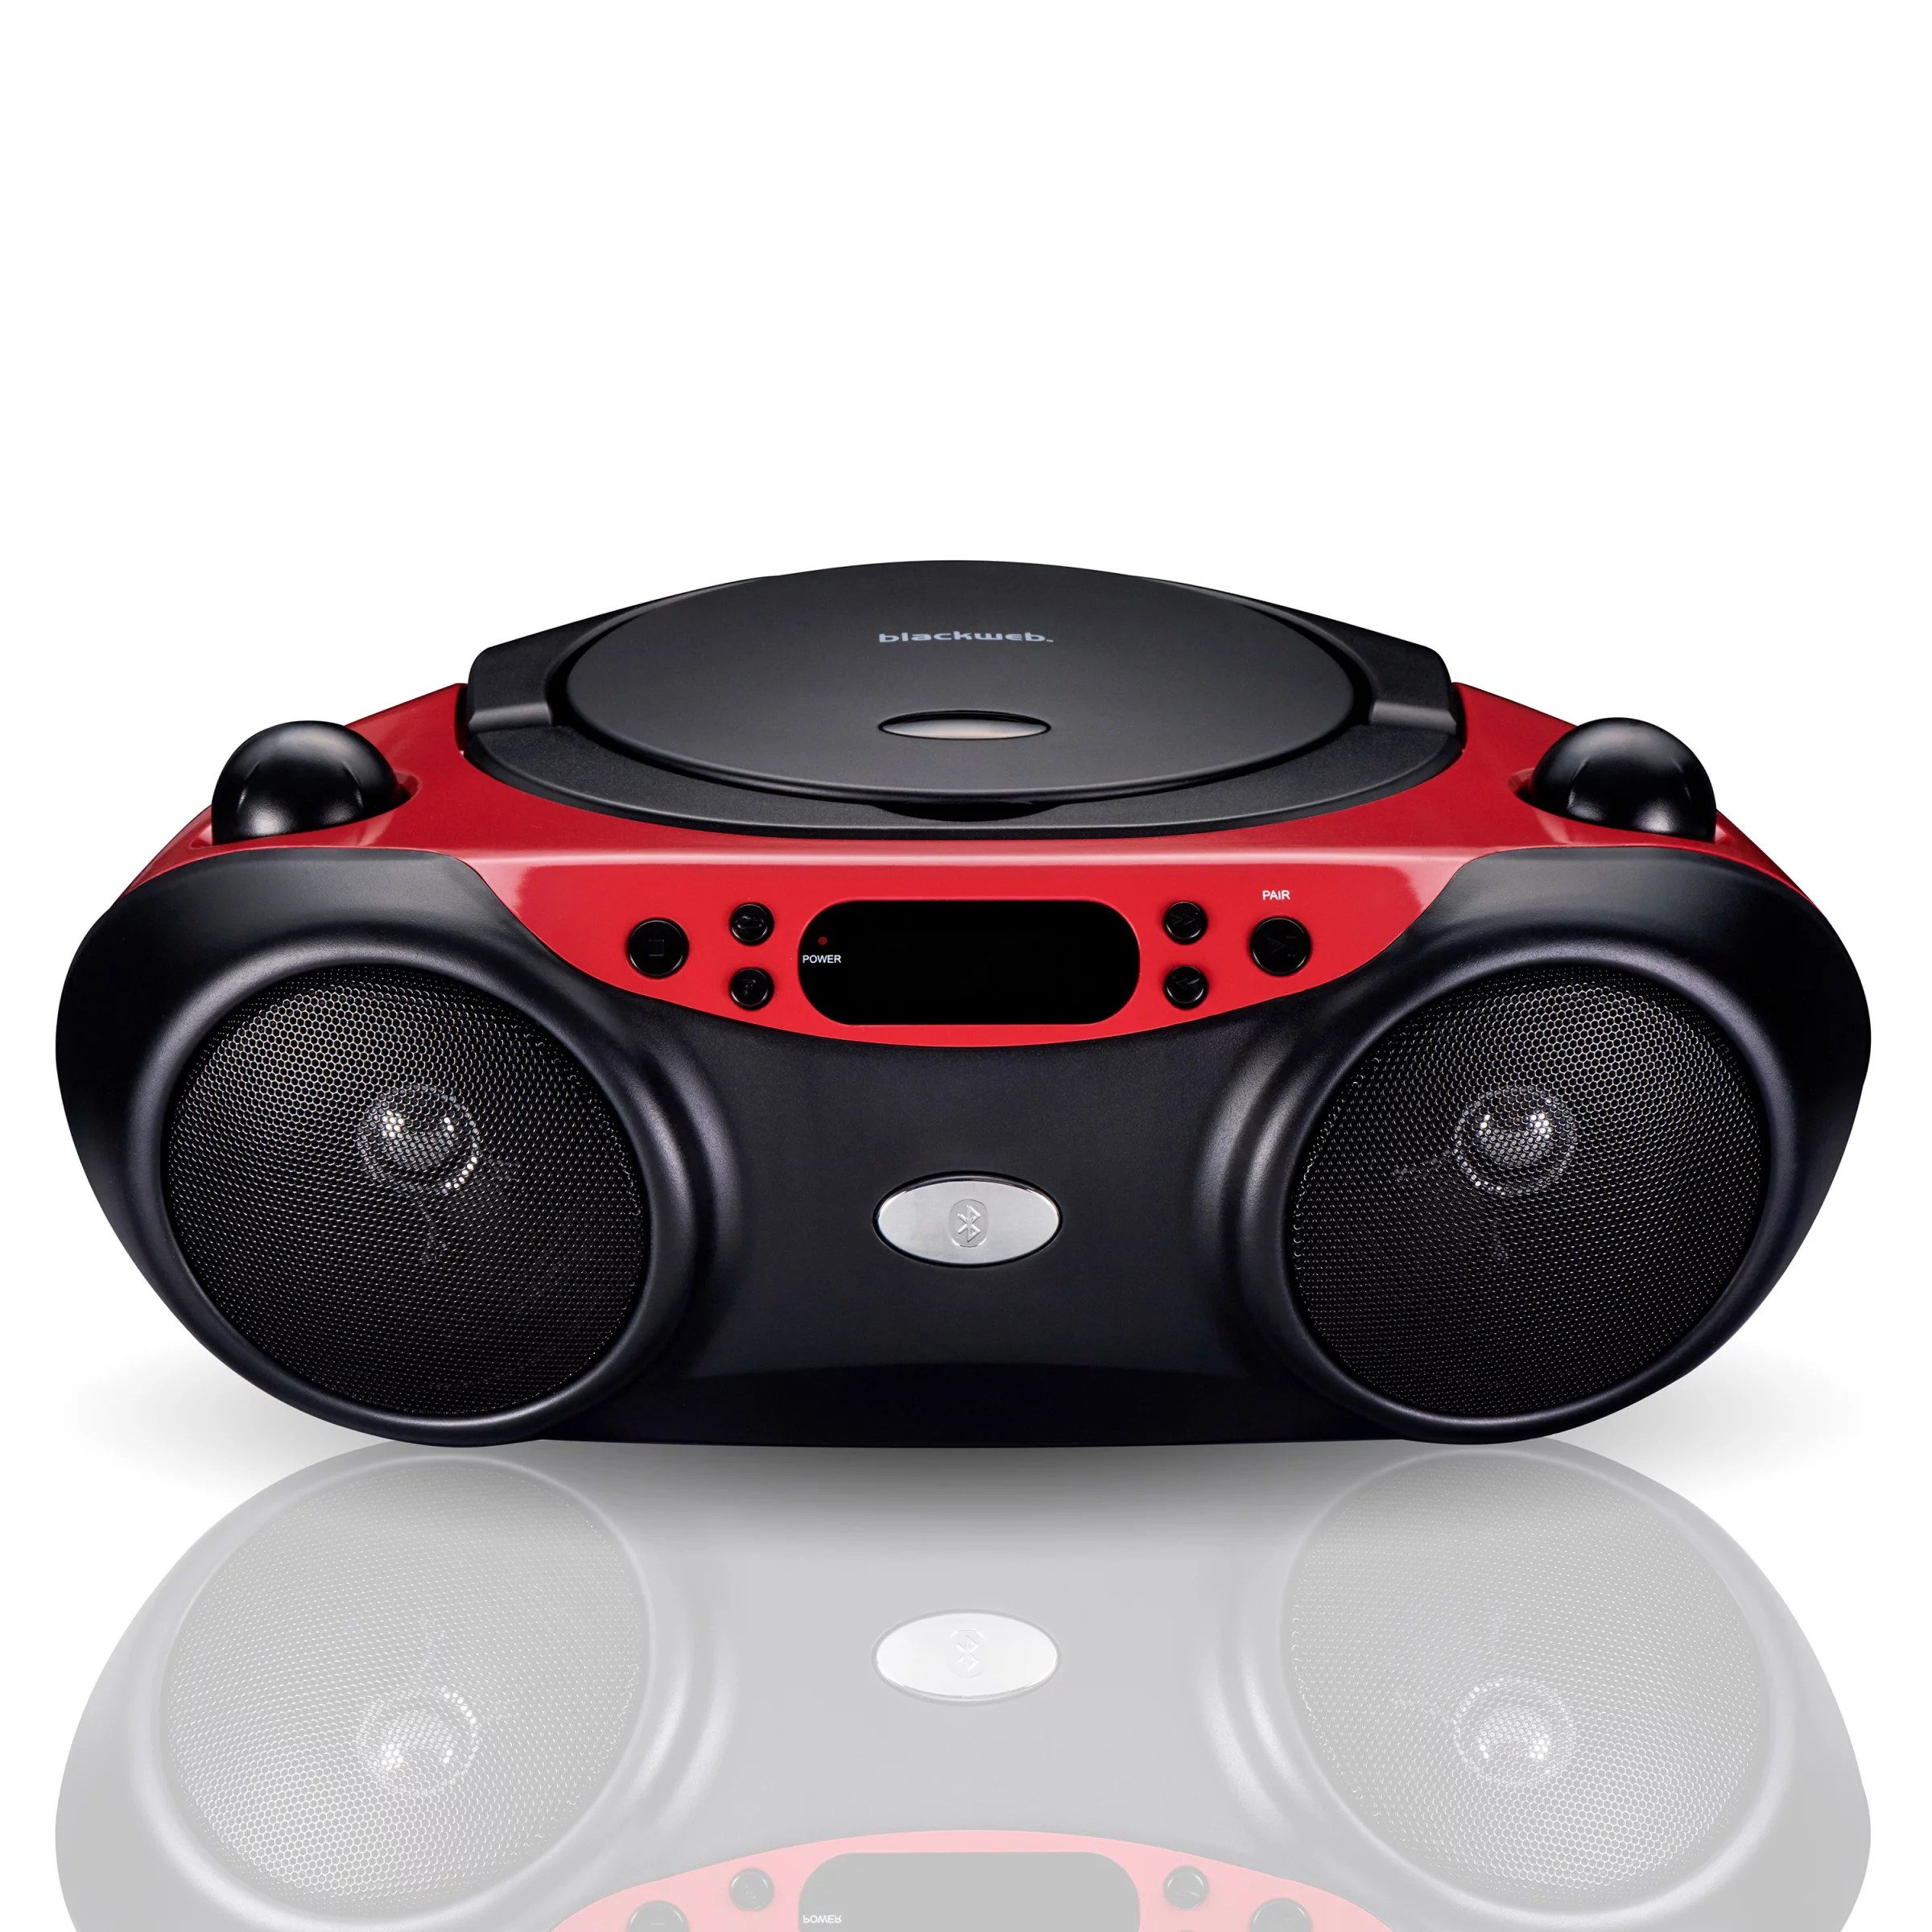 Radio-cd-player Für Badezimmer Blackweb Bluetooth Cd Player With Fm Radio Red And Black